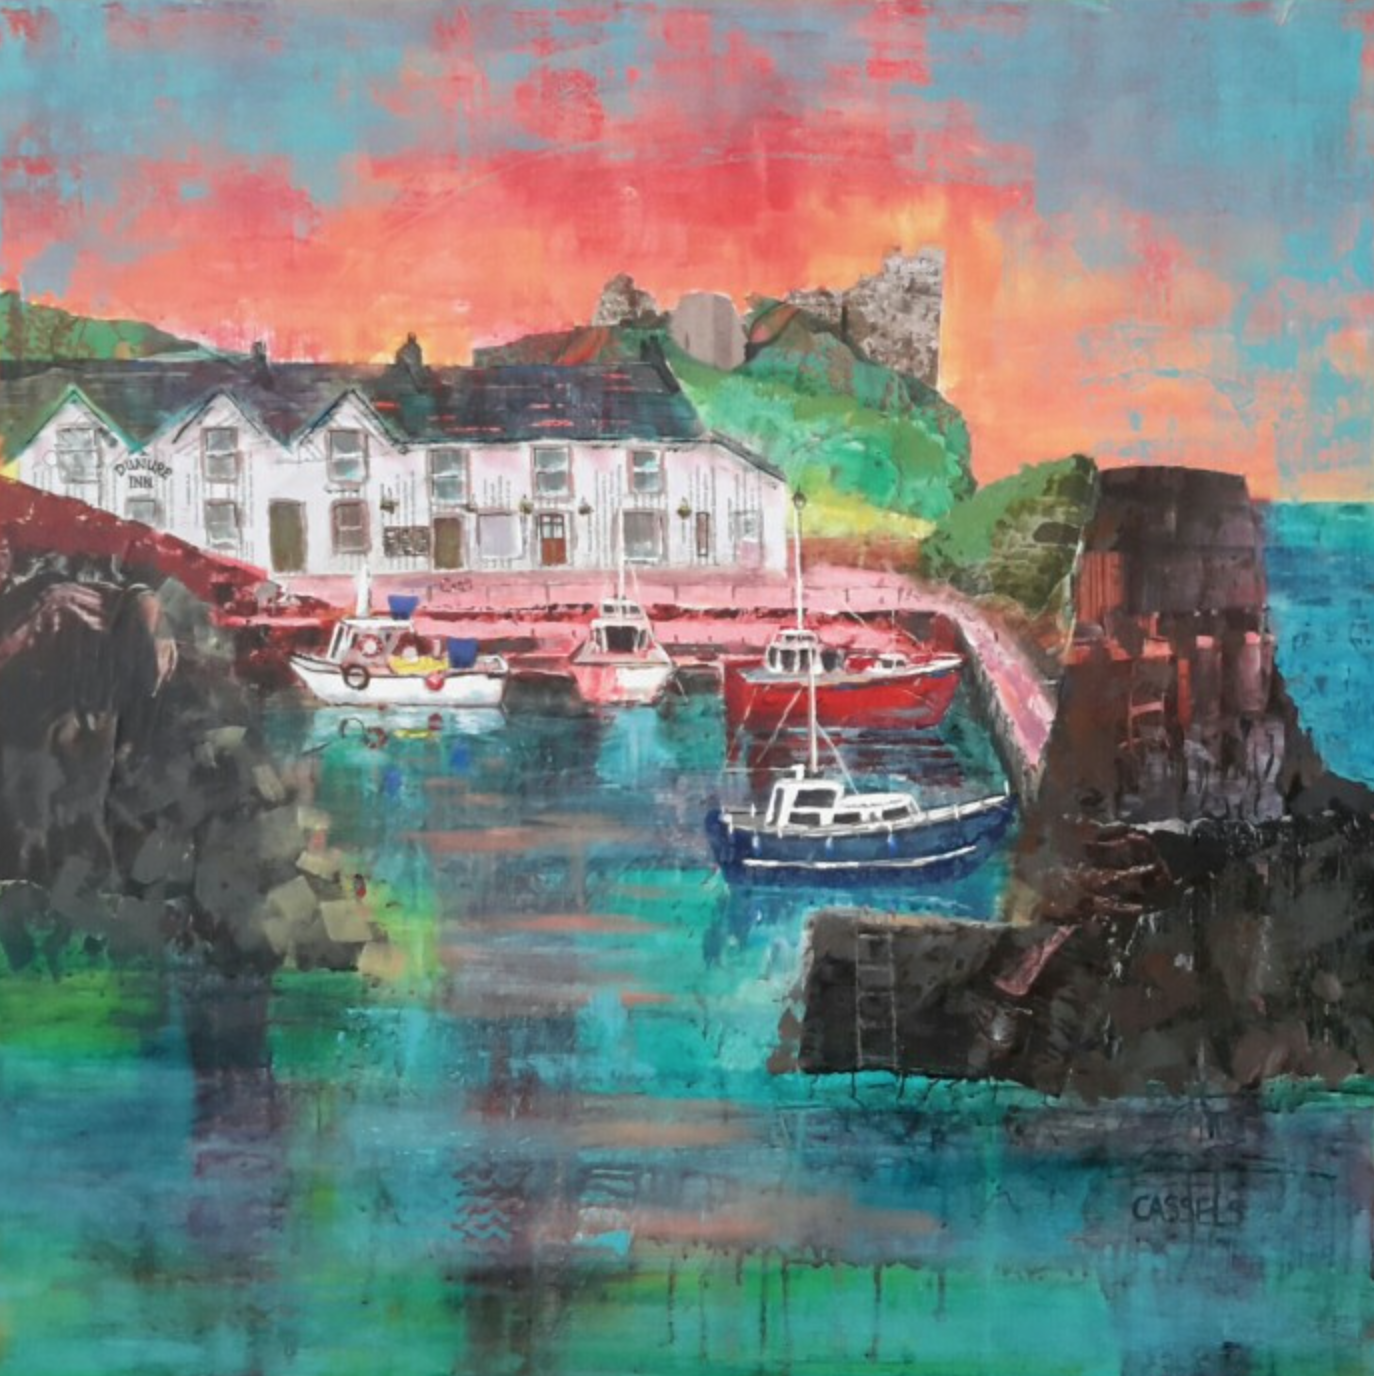 - Sunday 22nd October to Saturday 18th November 2017: The Maclaurin Art Gallery After many years of Millie, she is taking a back seat this year at the exhibition... but look out, she is there in miniature form!This year's competition is 'Ayrshire Image'.  I have entered a collage piece of Dunure Harbour which I loved creating. Lots of wee surprises in it. Pop in if you can, it's a great exhibition, for a great charity.